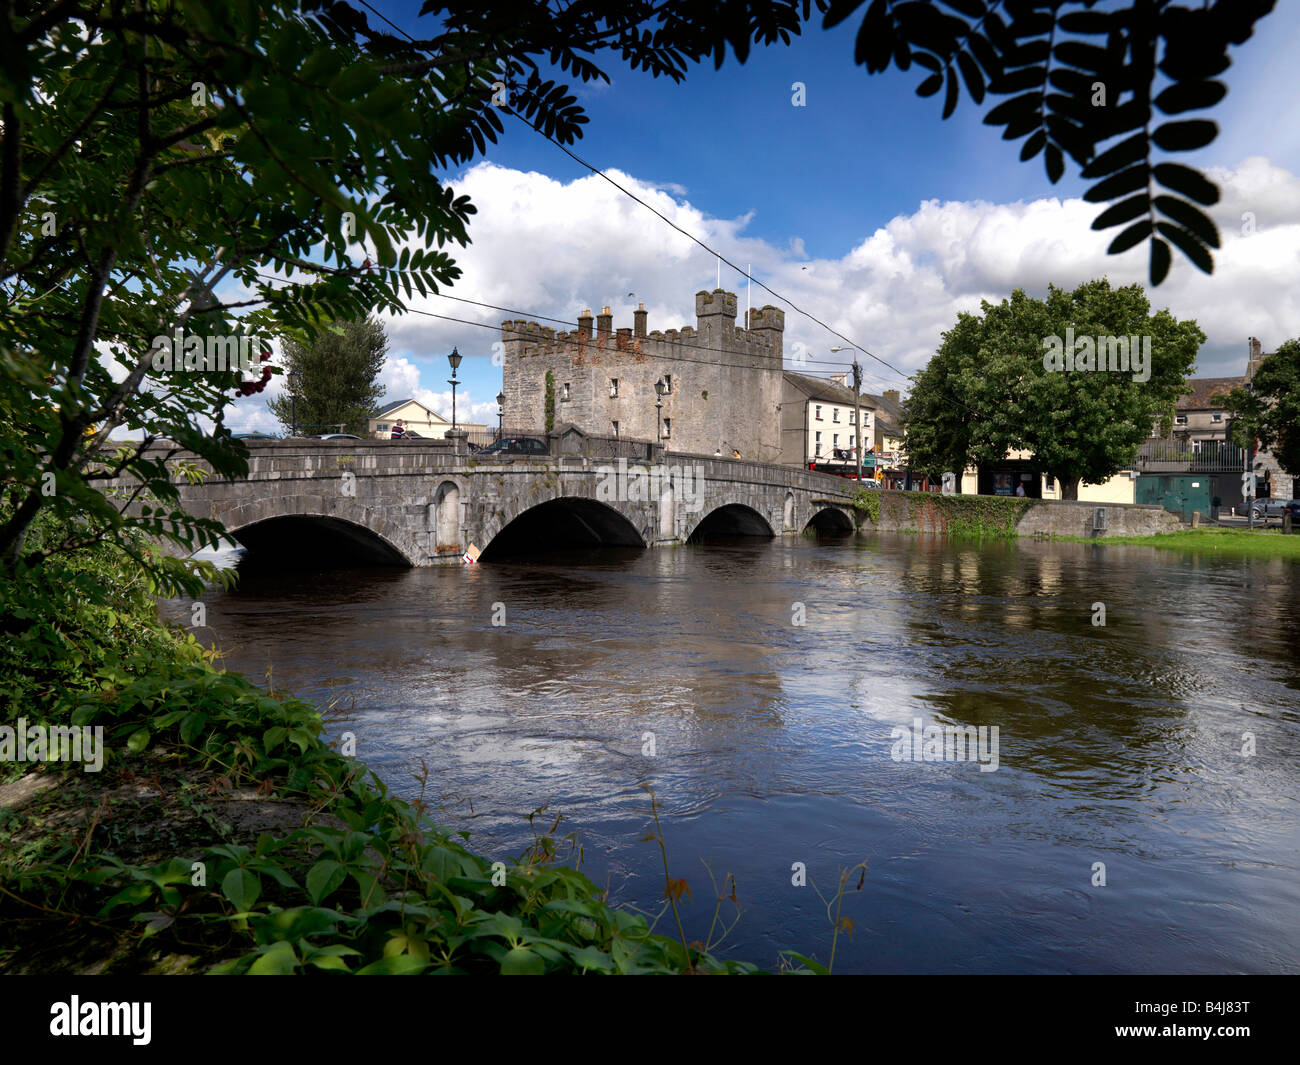 Athy College - Home - Athy College